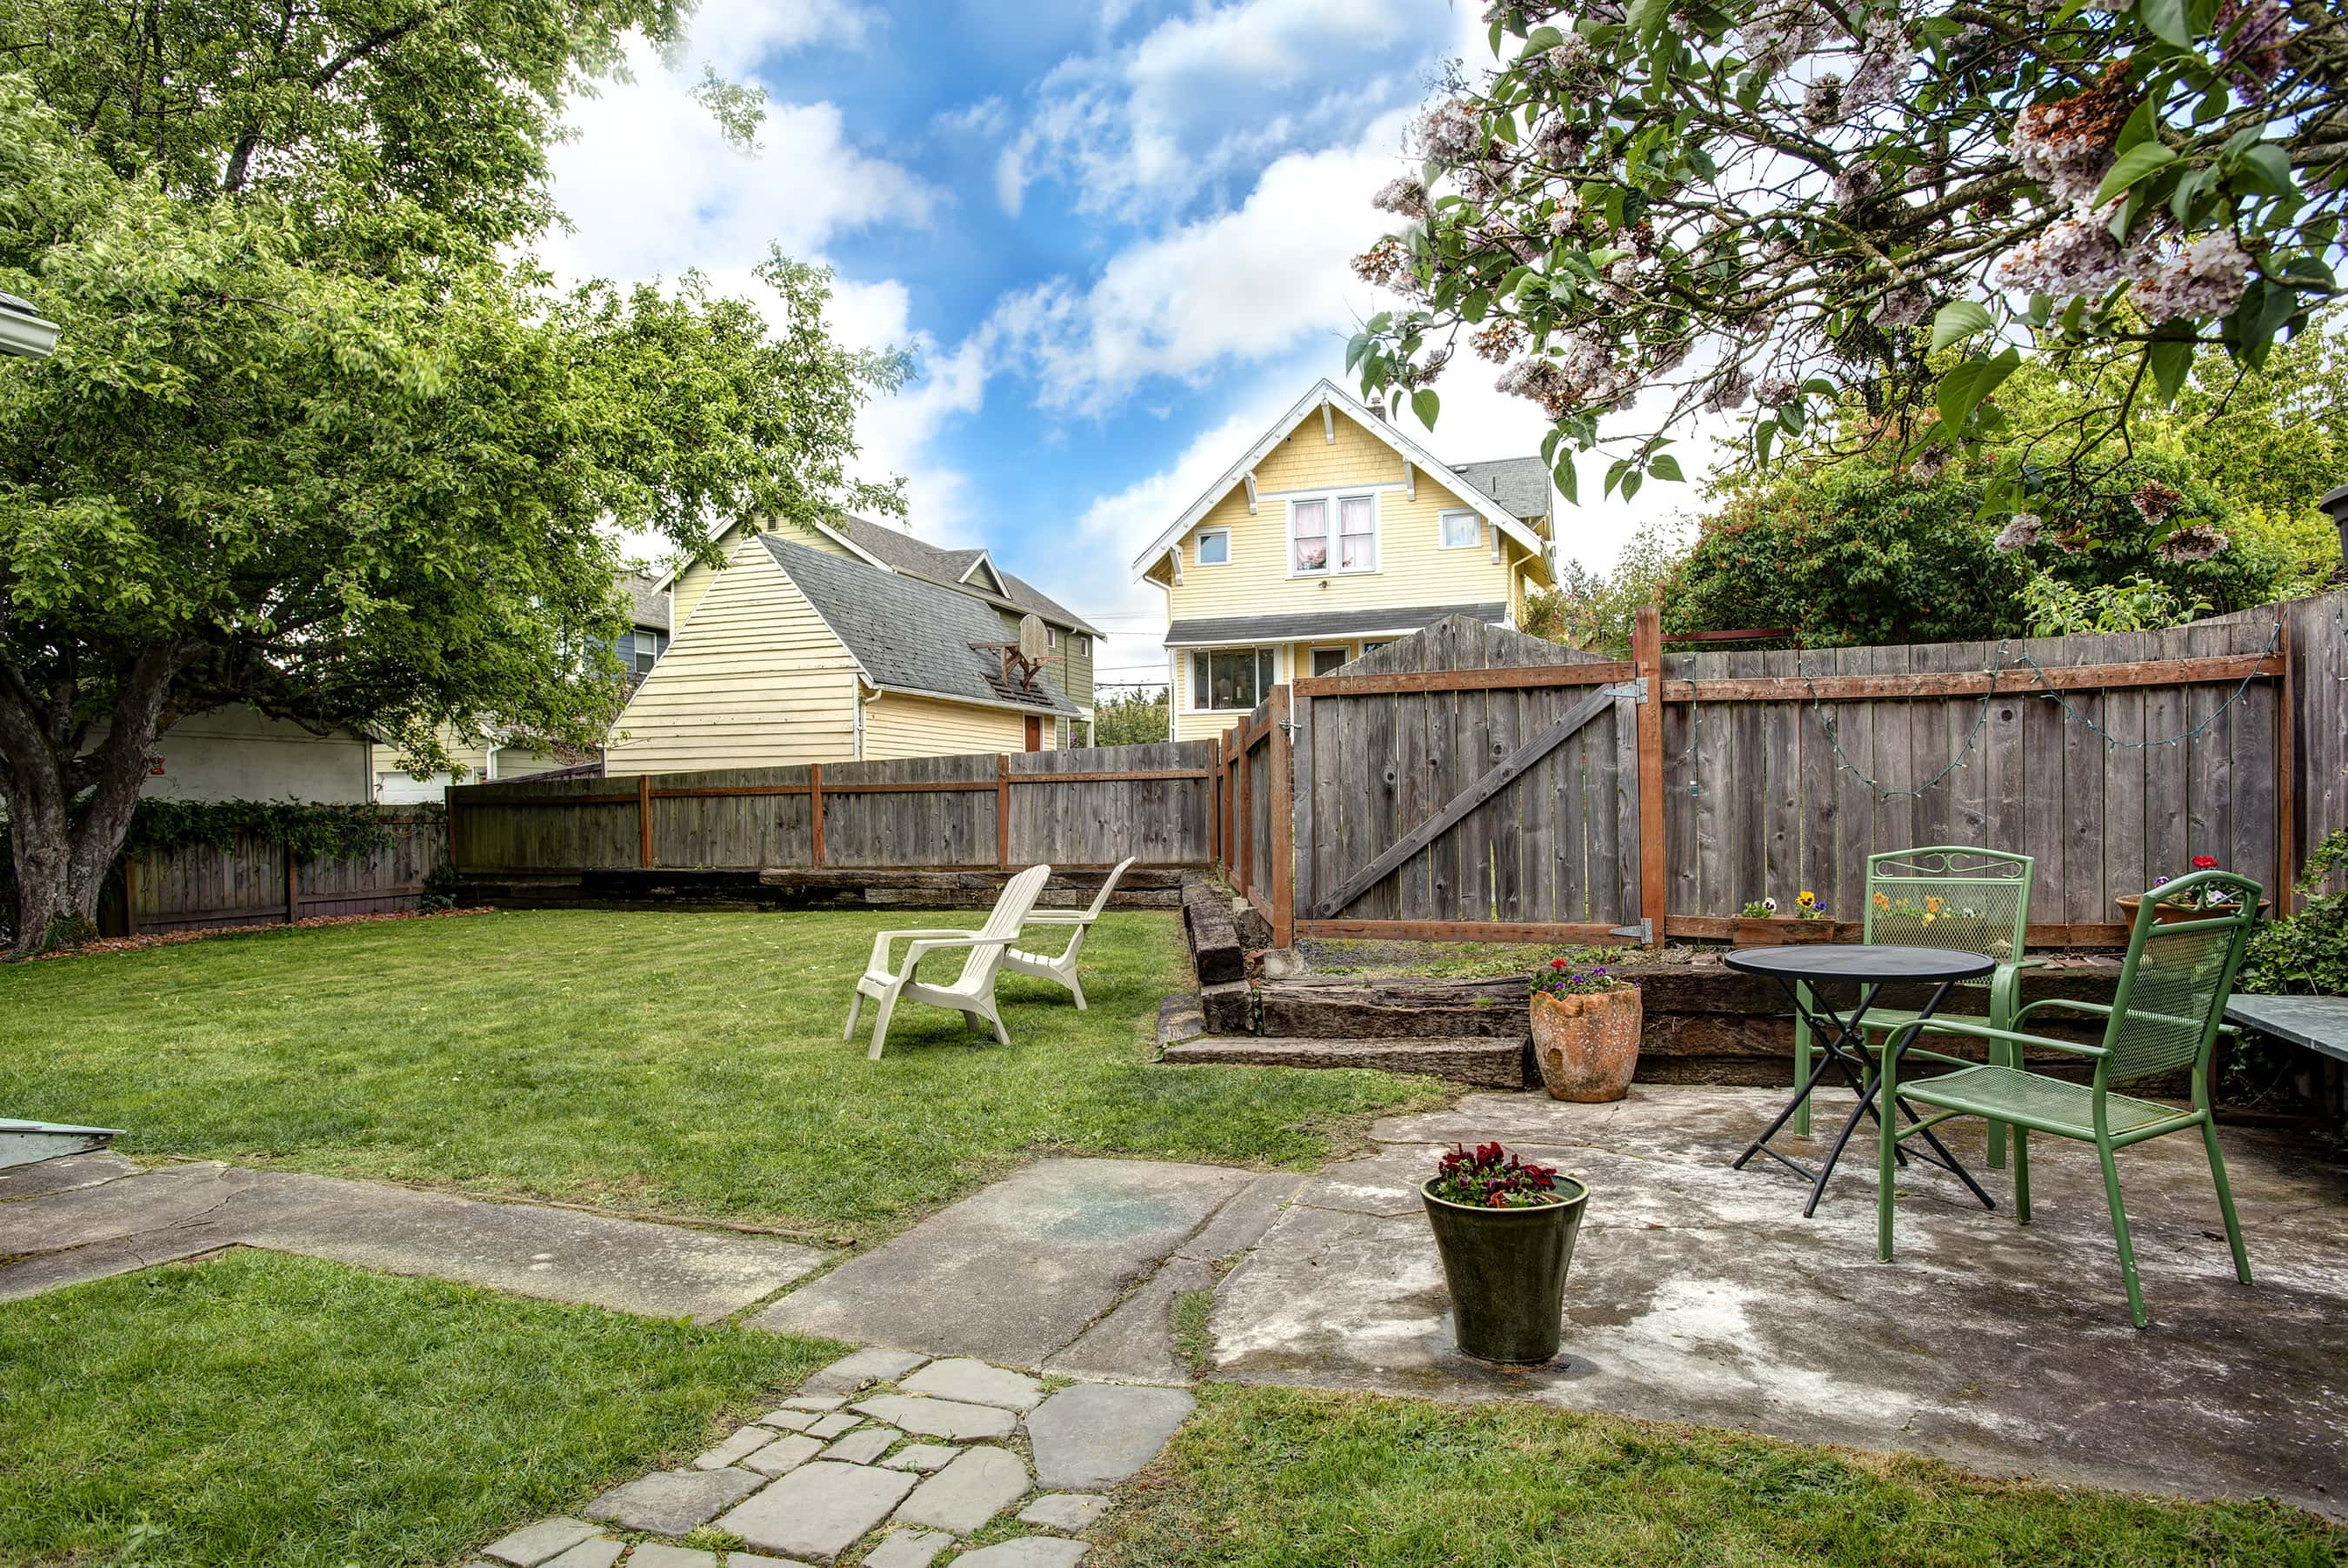 Fully fenced yard is perfect for grilling or playing with your four-legged friends.